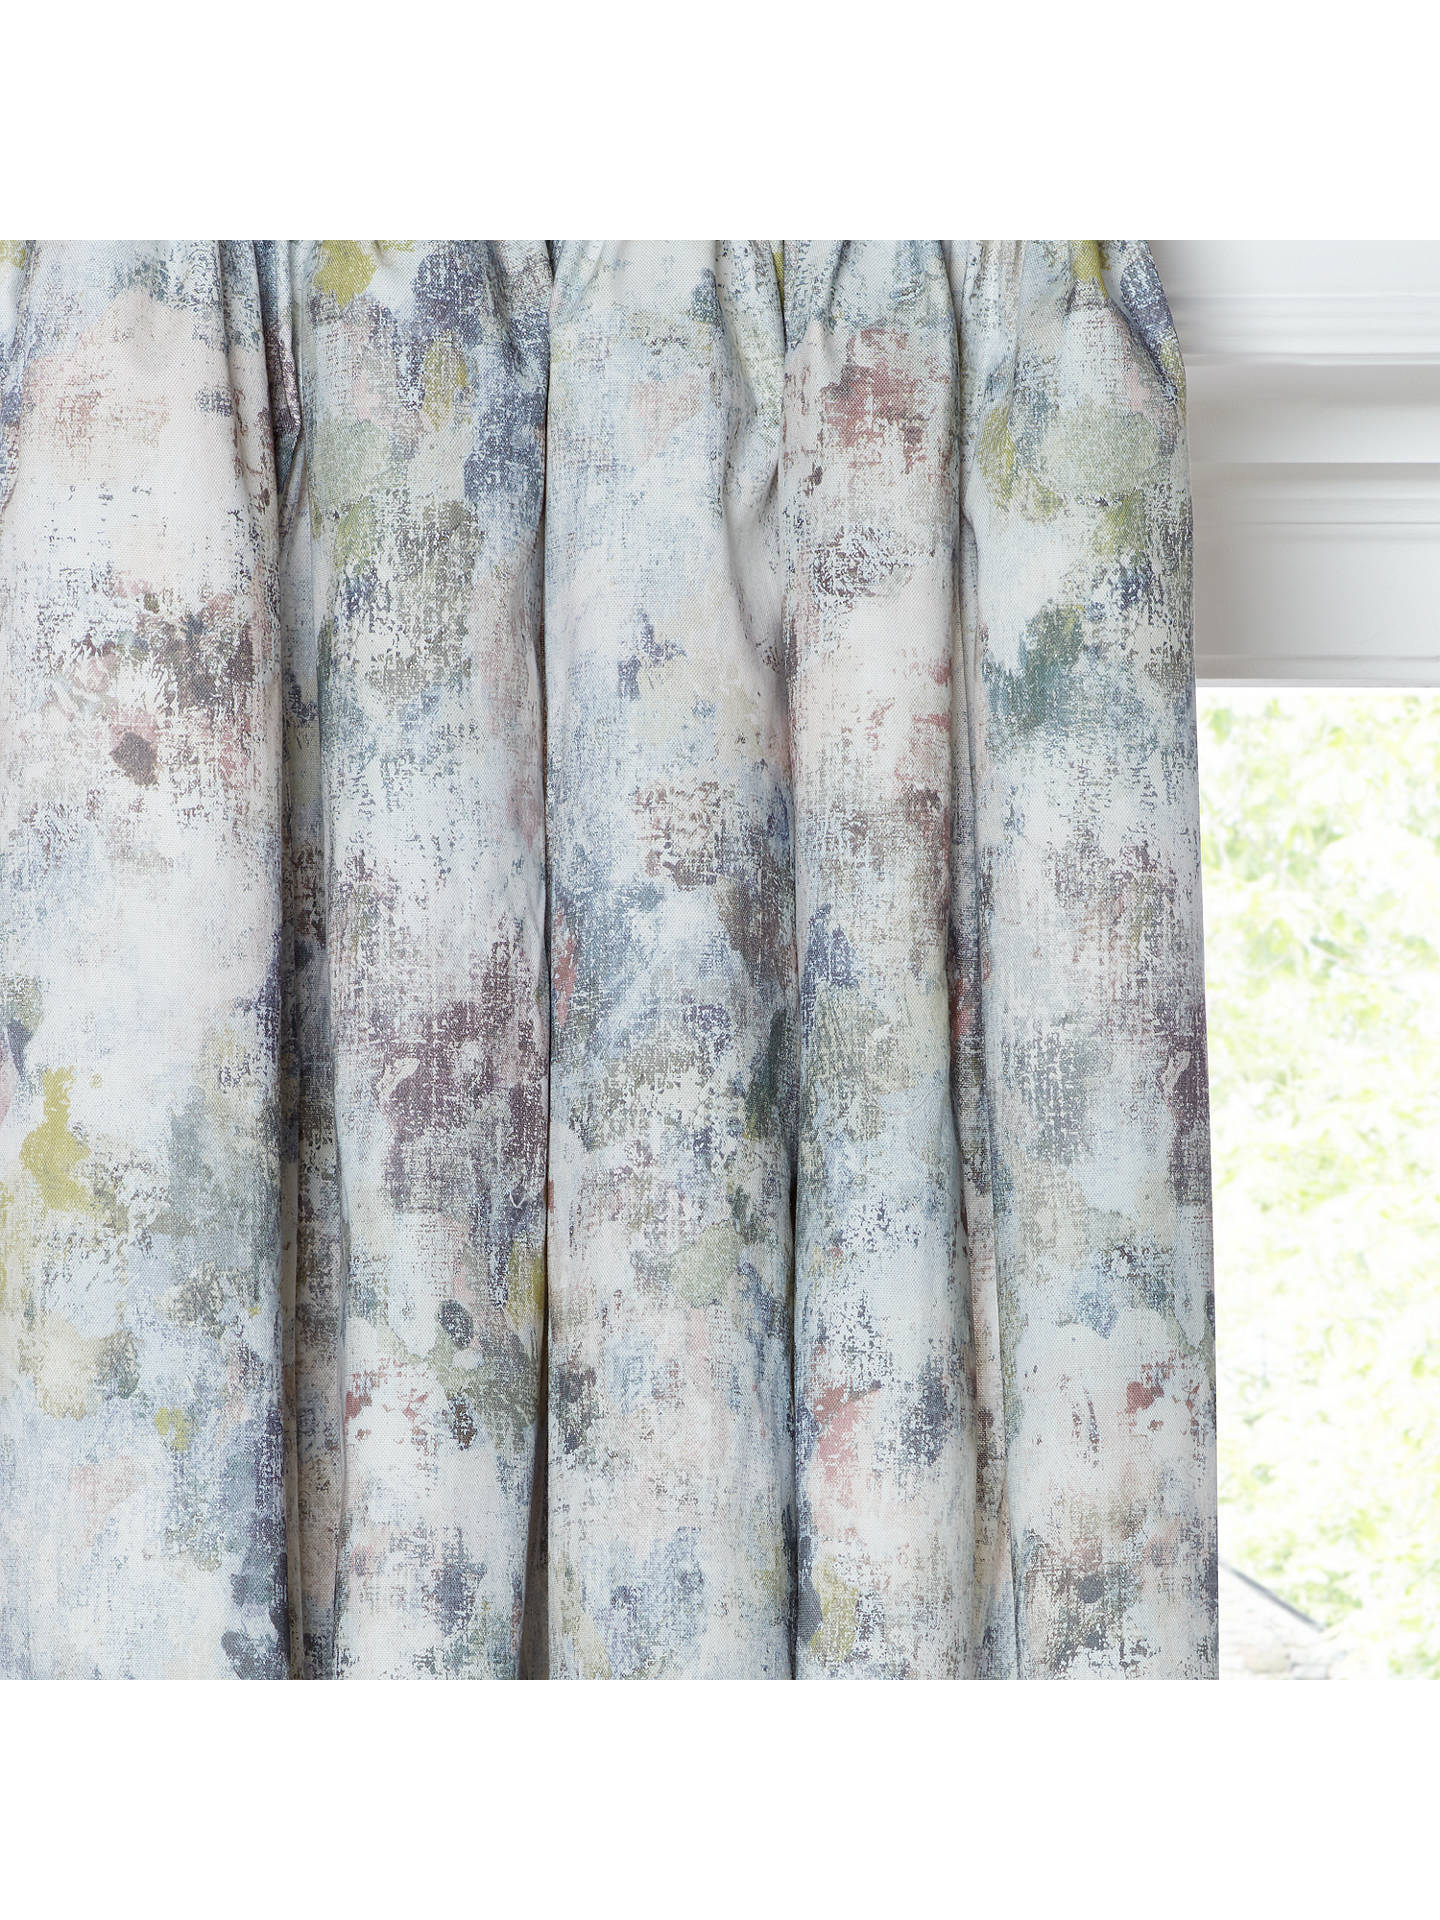 BuyJohn Lewis & Partners Giverny Pair Lined Pencil Pleat Curtains, Multi, W167 x Drop 137cm Online at johnlewis.com